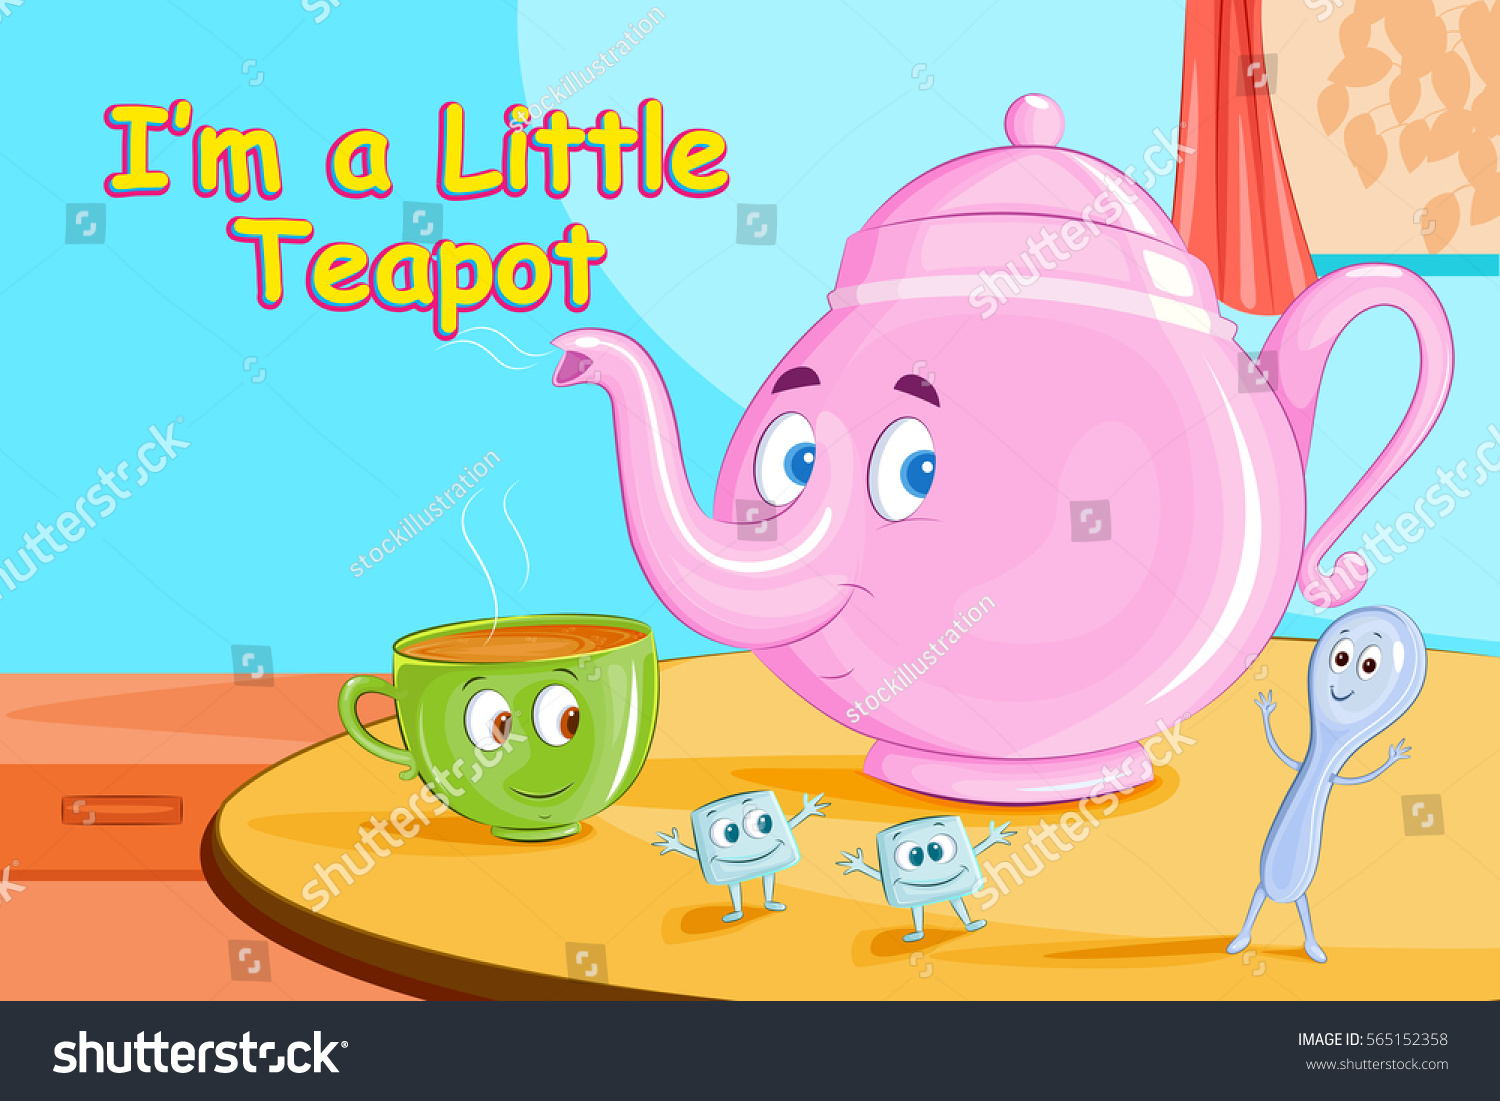 Little Teapotkids English Nursery Rhymes Book Stock Vector